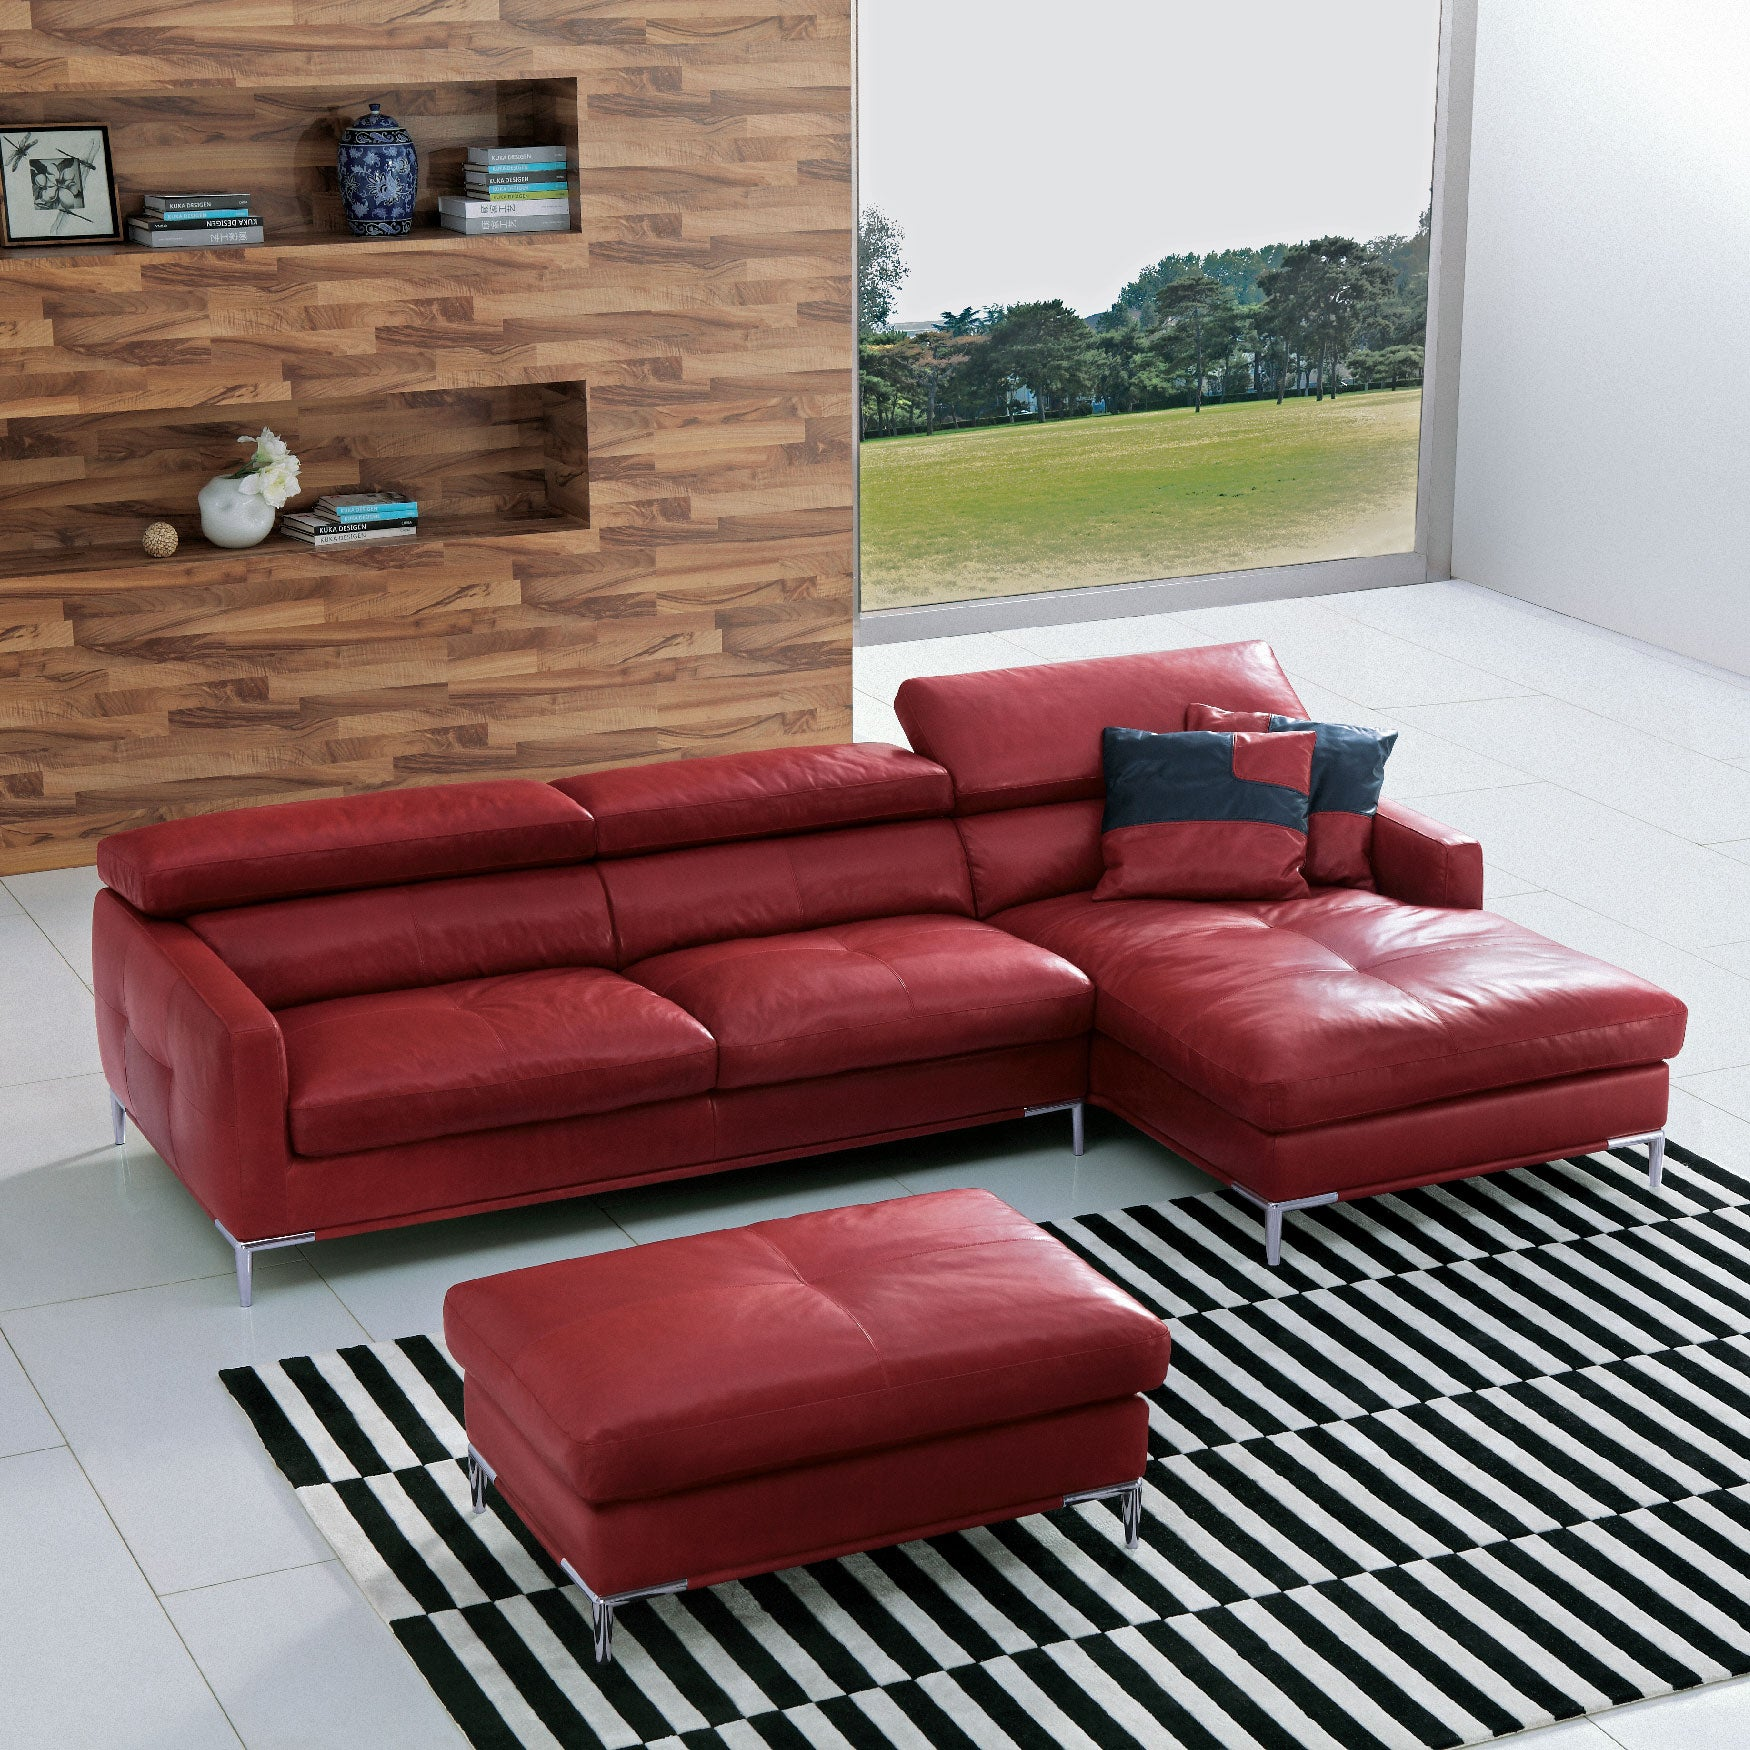 Best Leather Sofas In Singapore: Bestselling KUKA 1281 Jacob Leather Sofa W/Stainless Steel